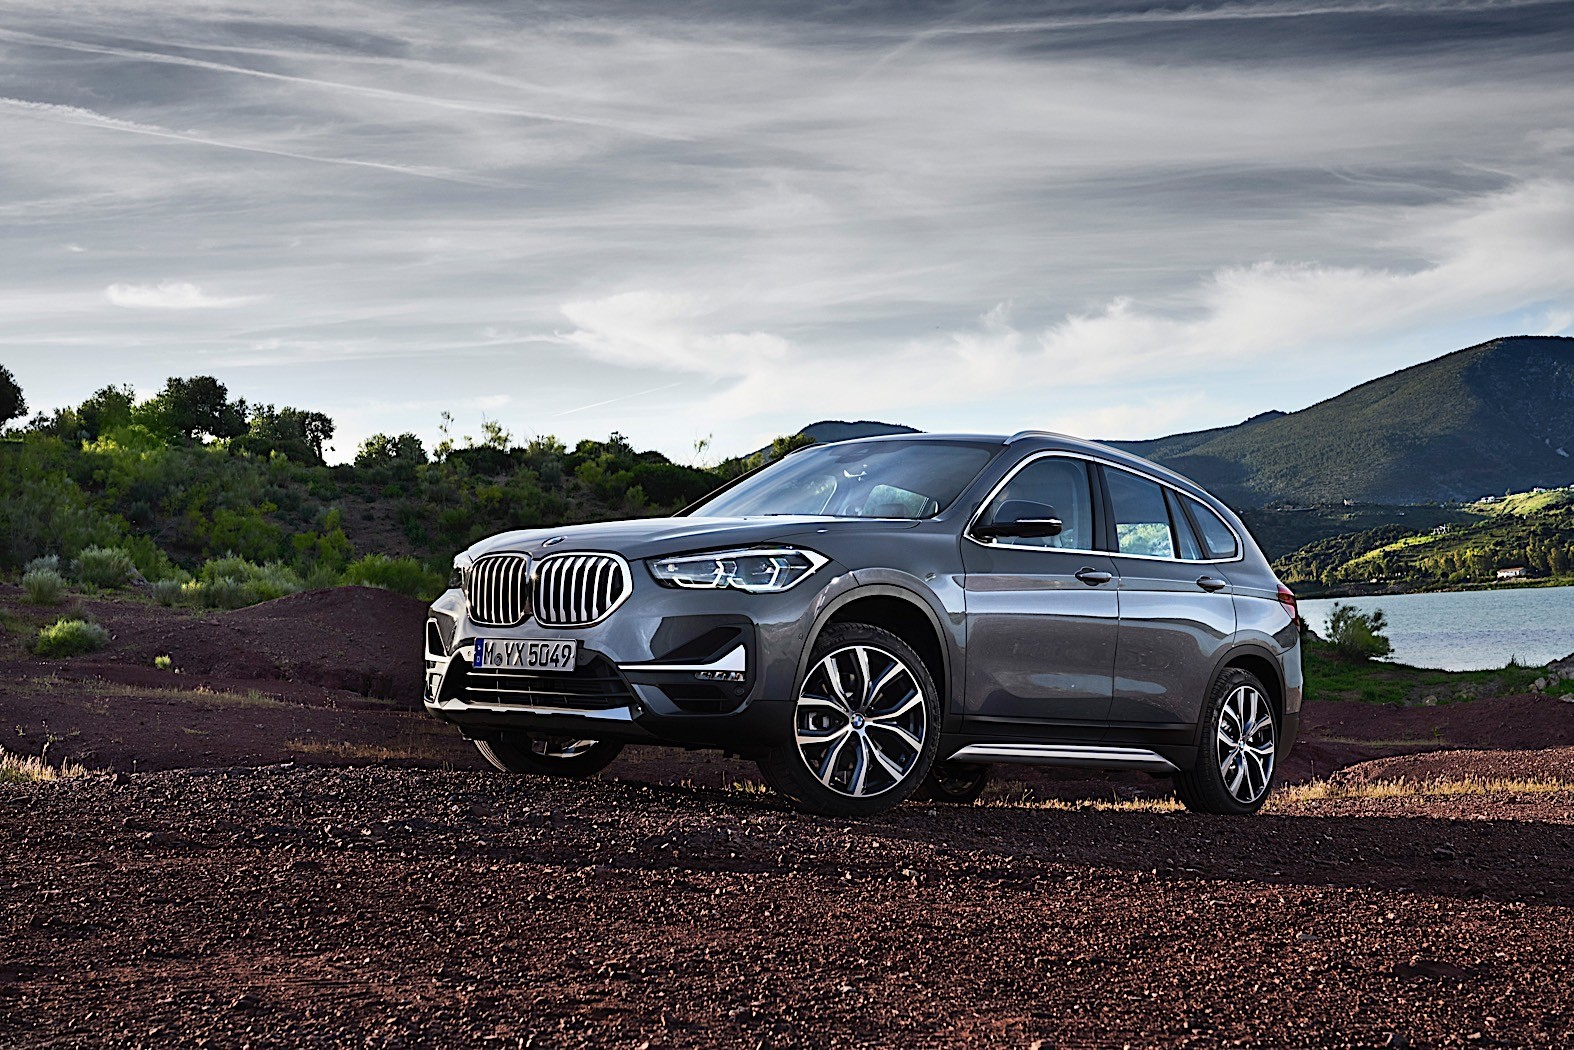 2020-bmw-x1-breaks-cover-with-larger-grille-and-the-promise-of-a-plug-in-hybrid_28